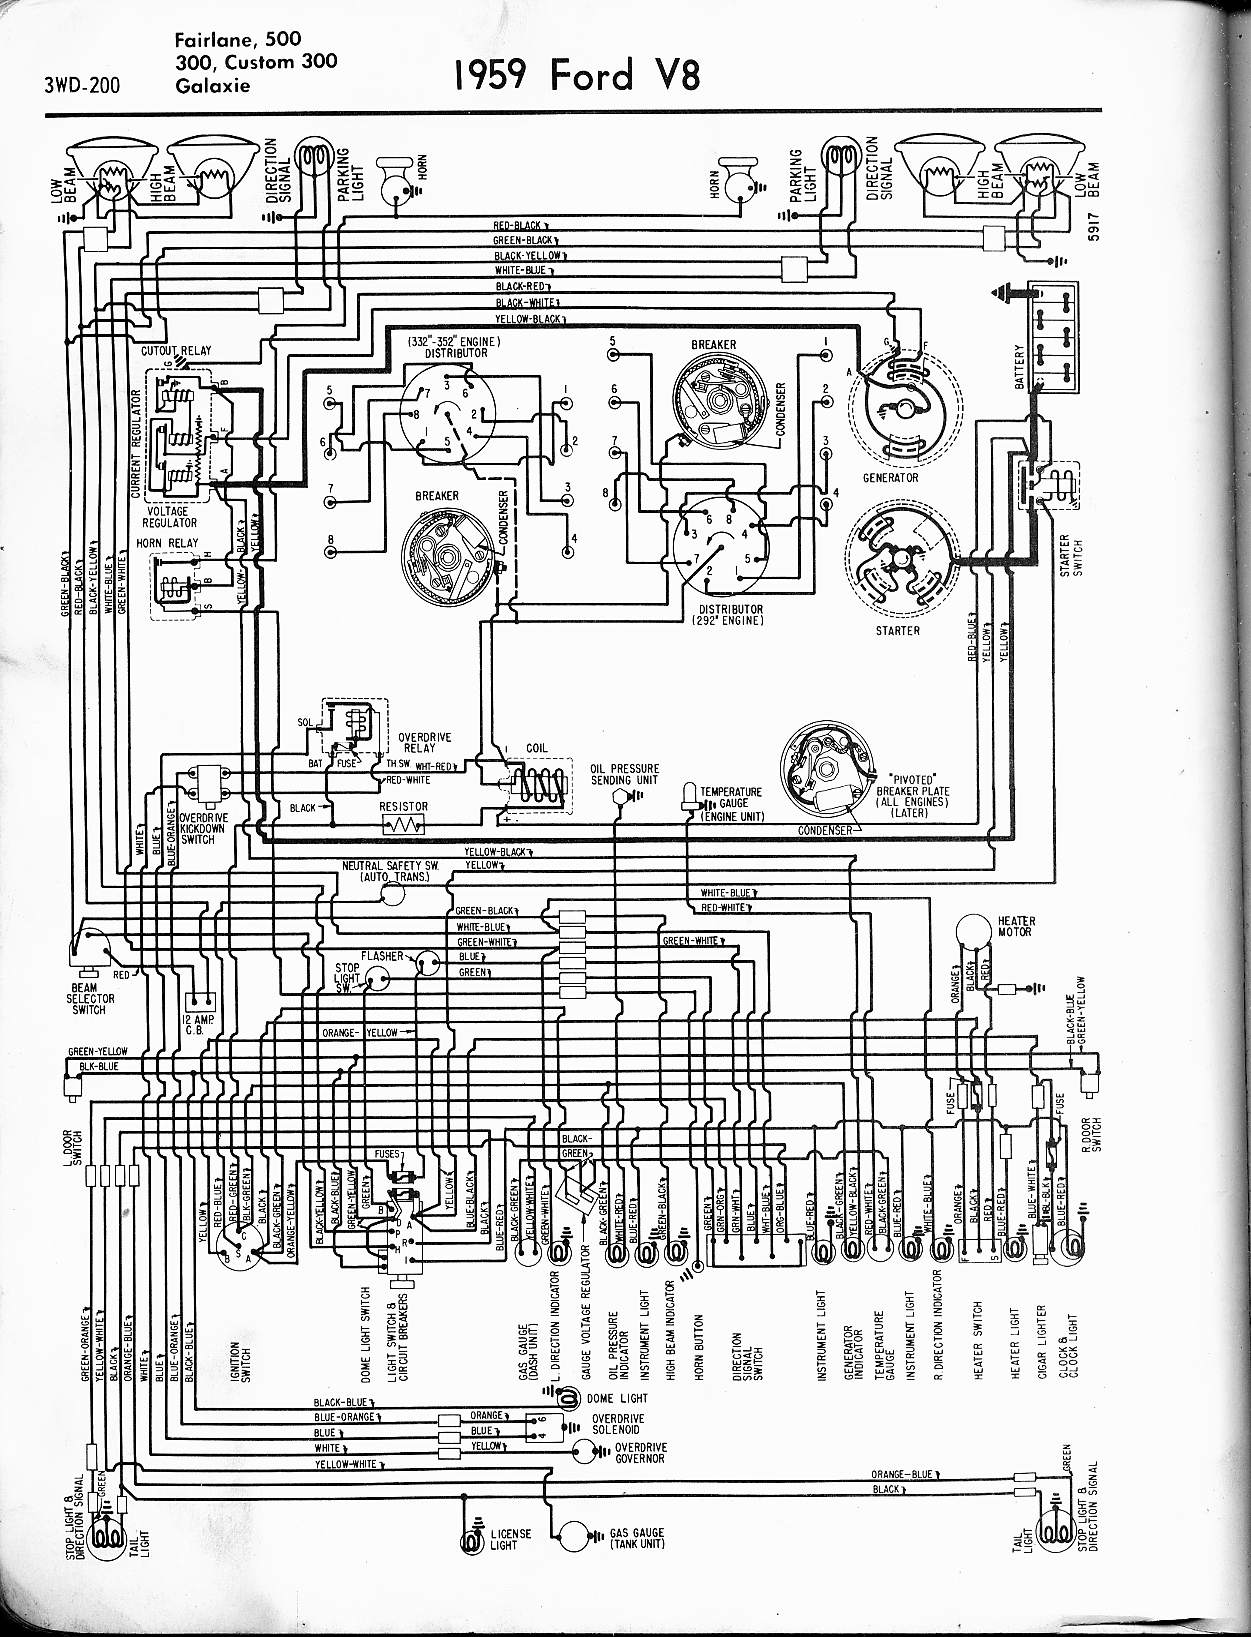 MWire5765 200 57 65 ford wiring diagrams 1959 ford f100 wiring harness at bayanpartner.co